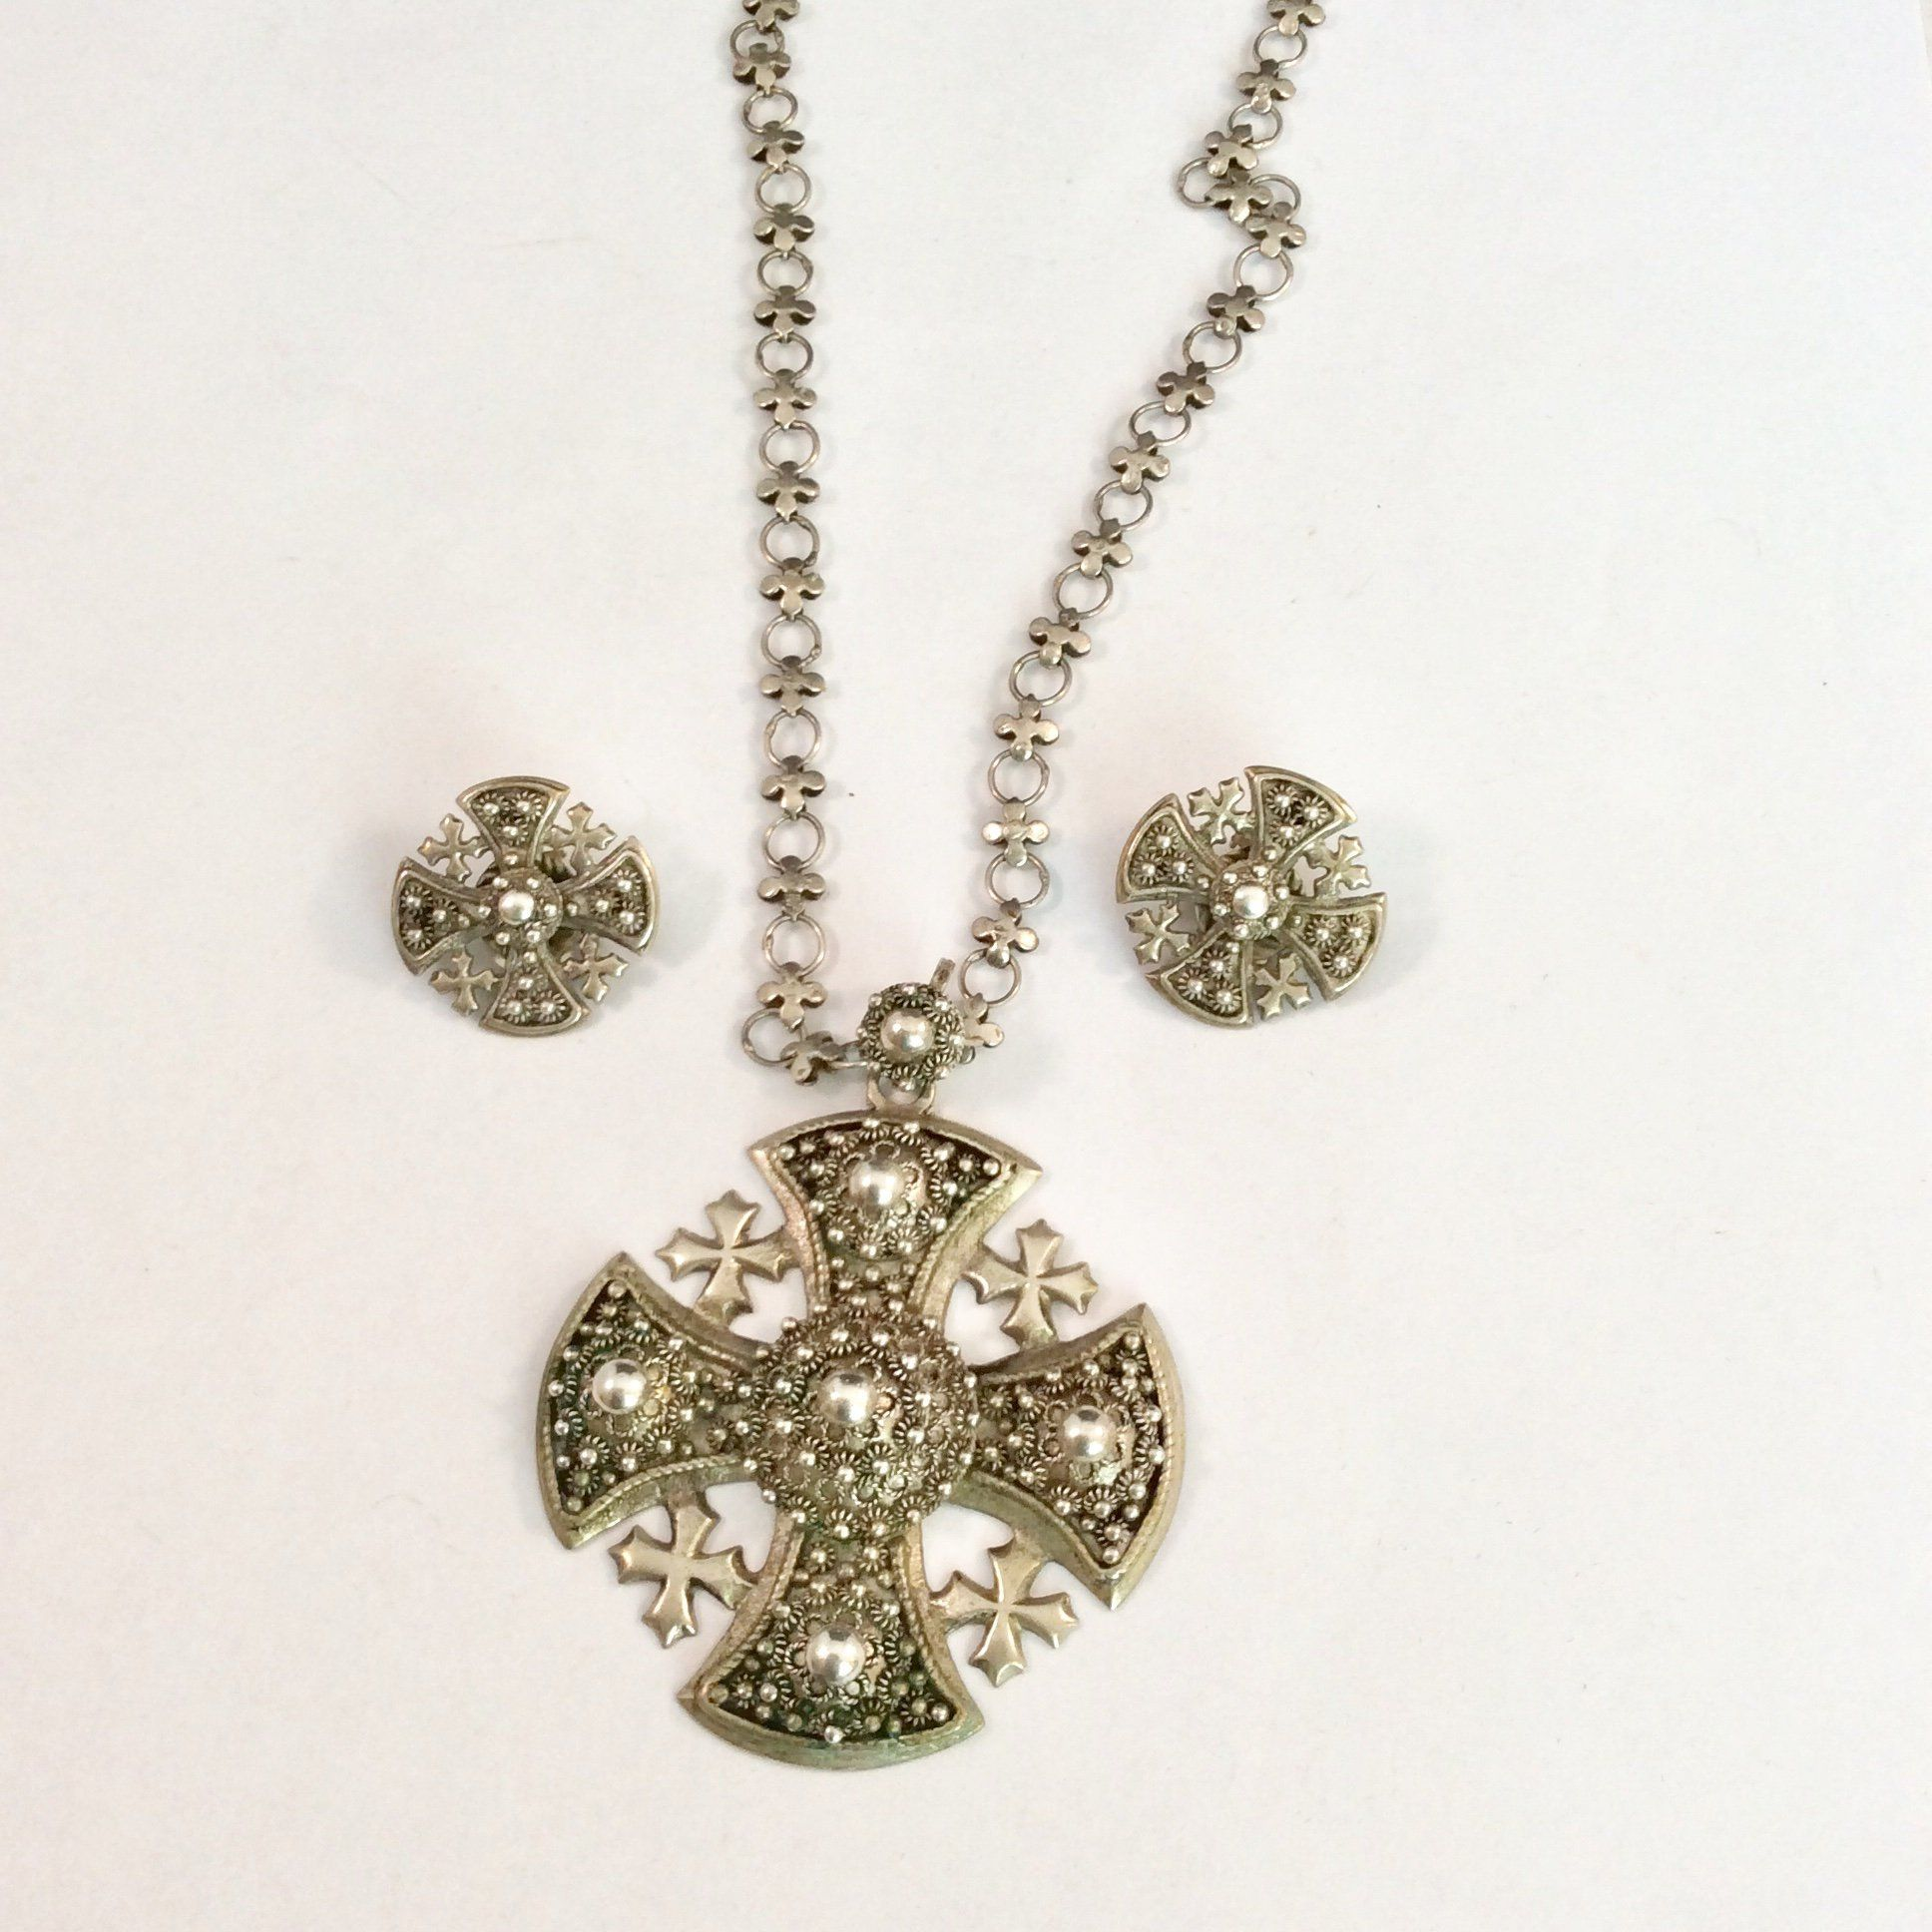 Cross and Coins necklace and earring set